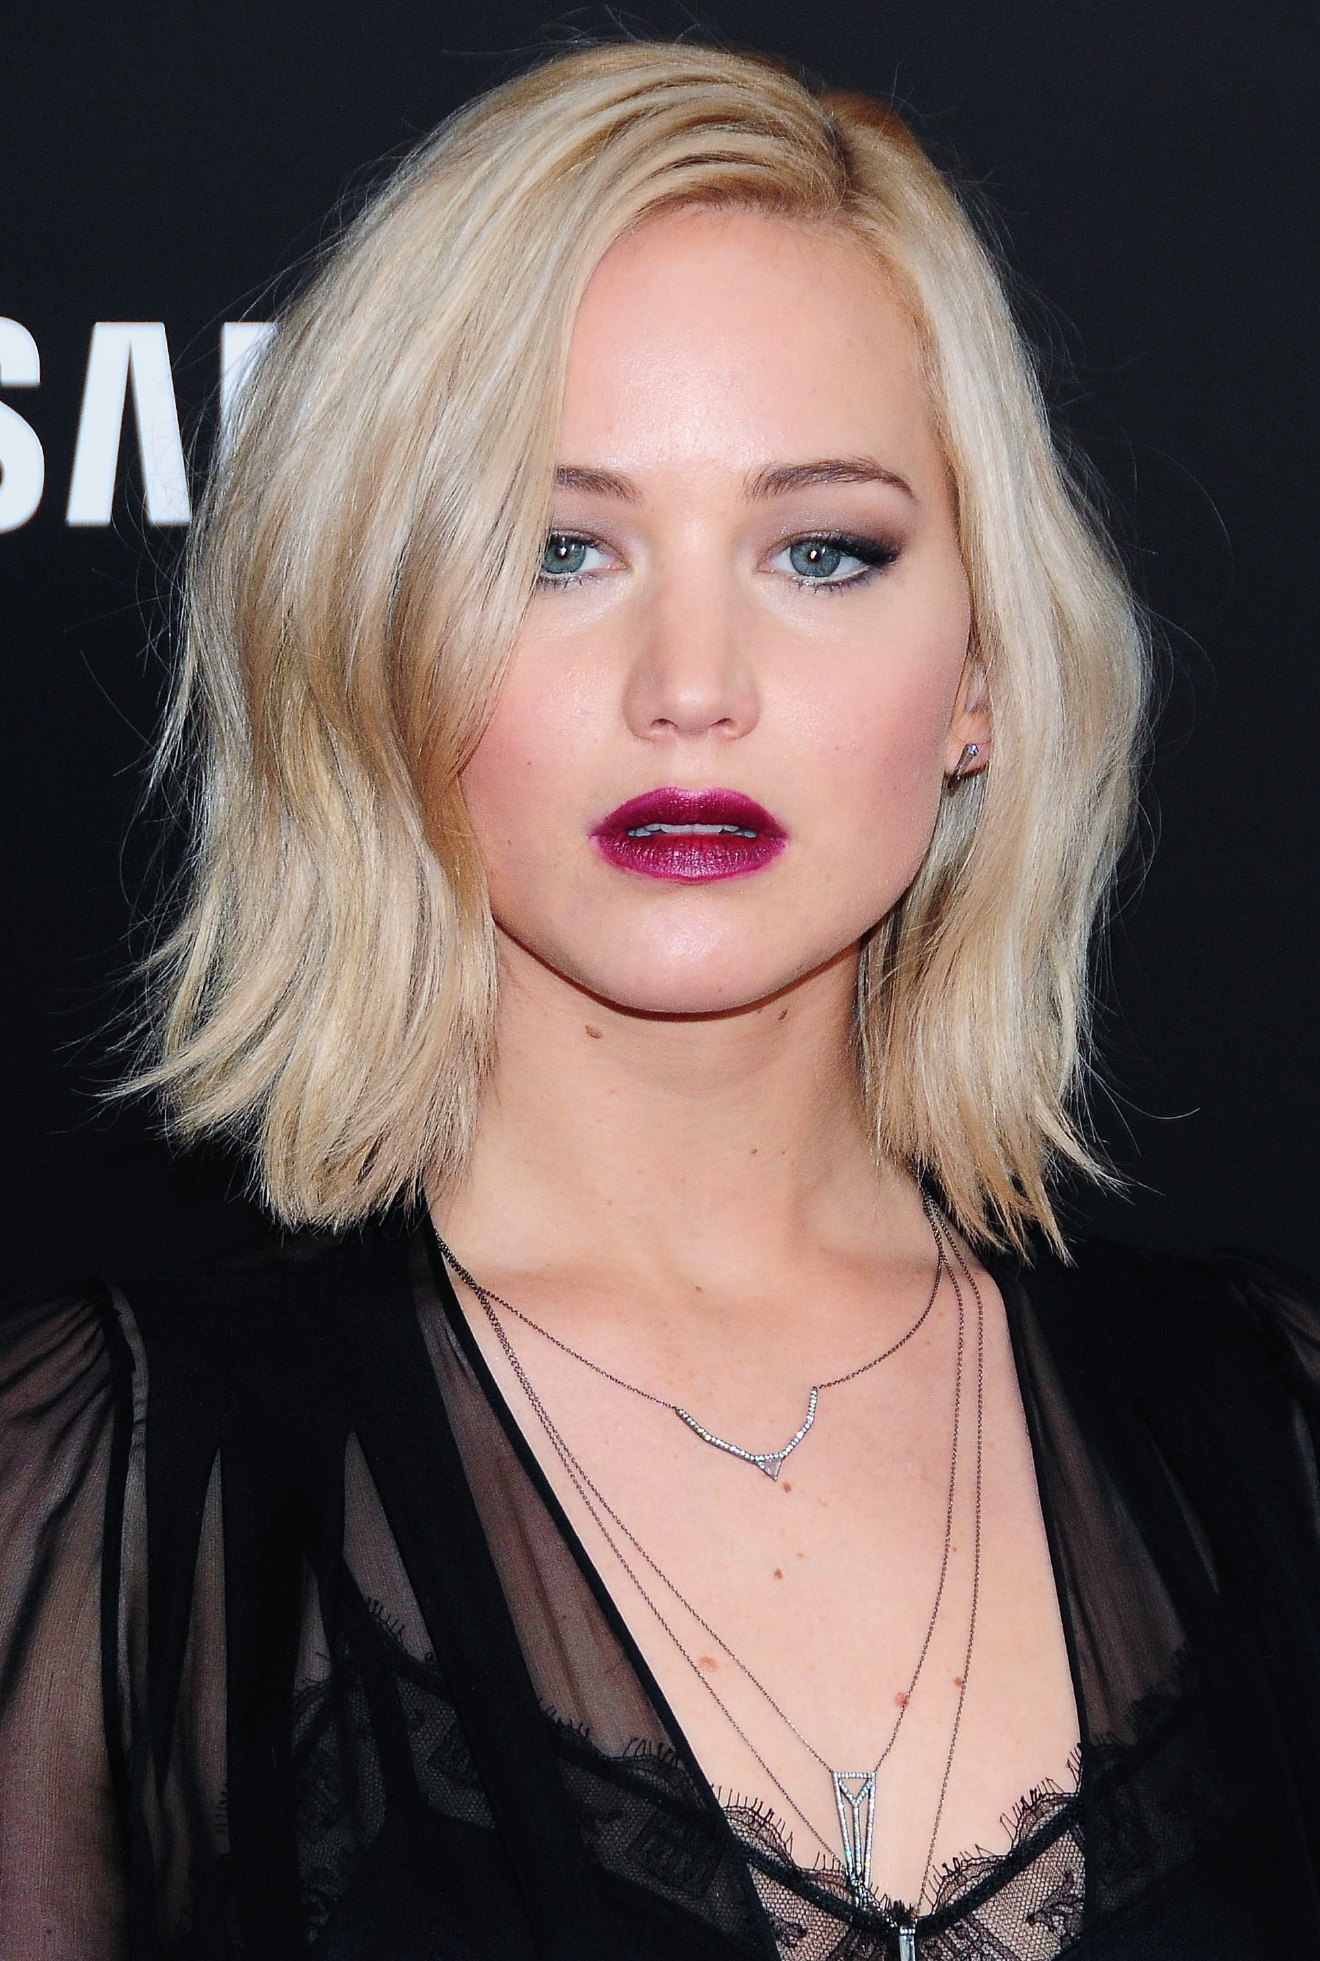 'The Hunger Games: Mockingjay - Part 2' special screening at AMC Lincoln Square - Arrivals  Featuring: Jennifer Lawrence Where: New York, United States When: 18 Nov 2015 Credit: Dan Jackman/WENN.com